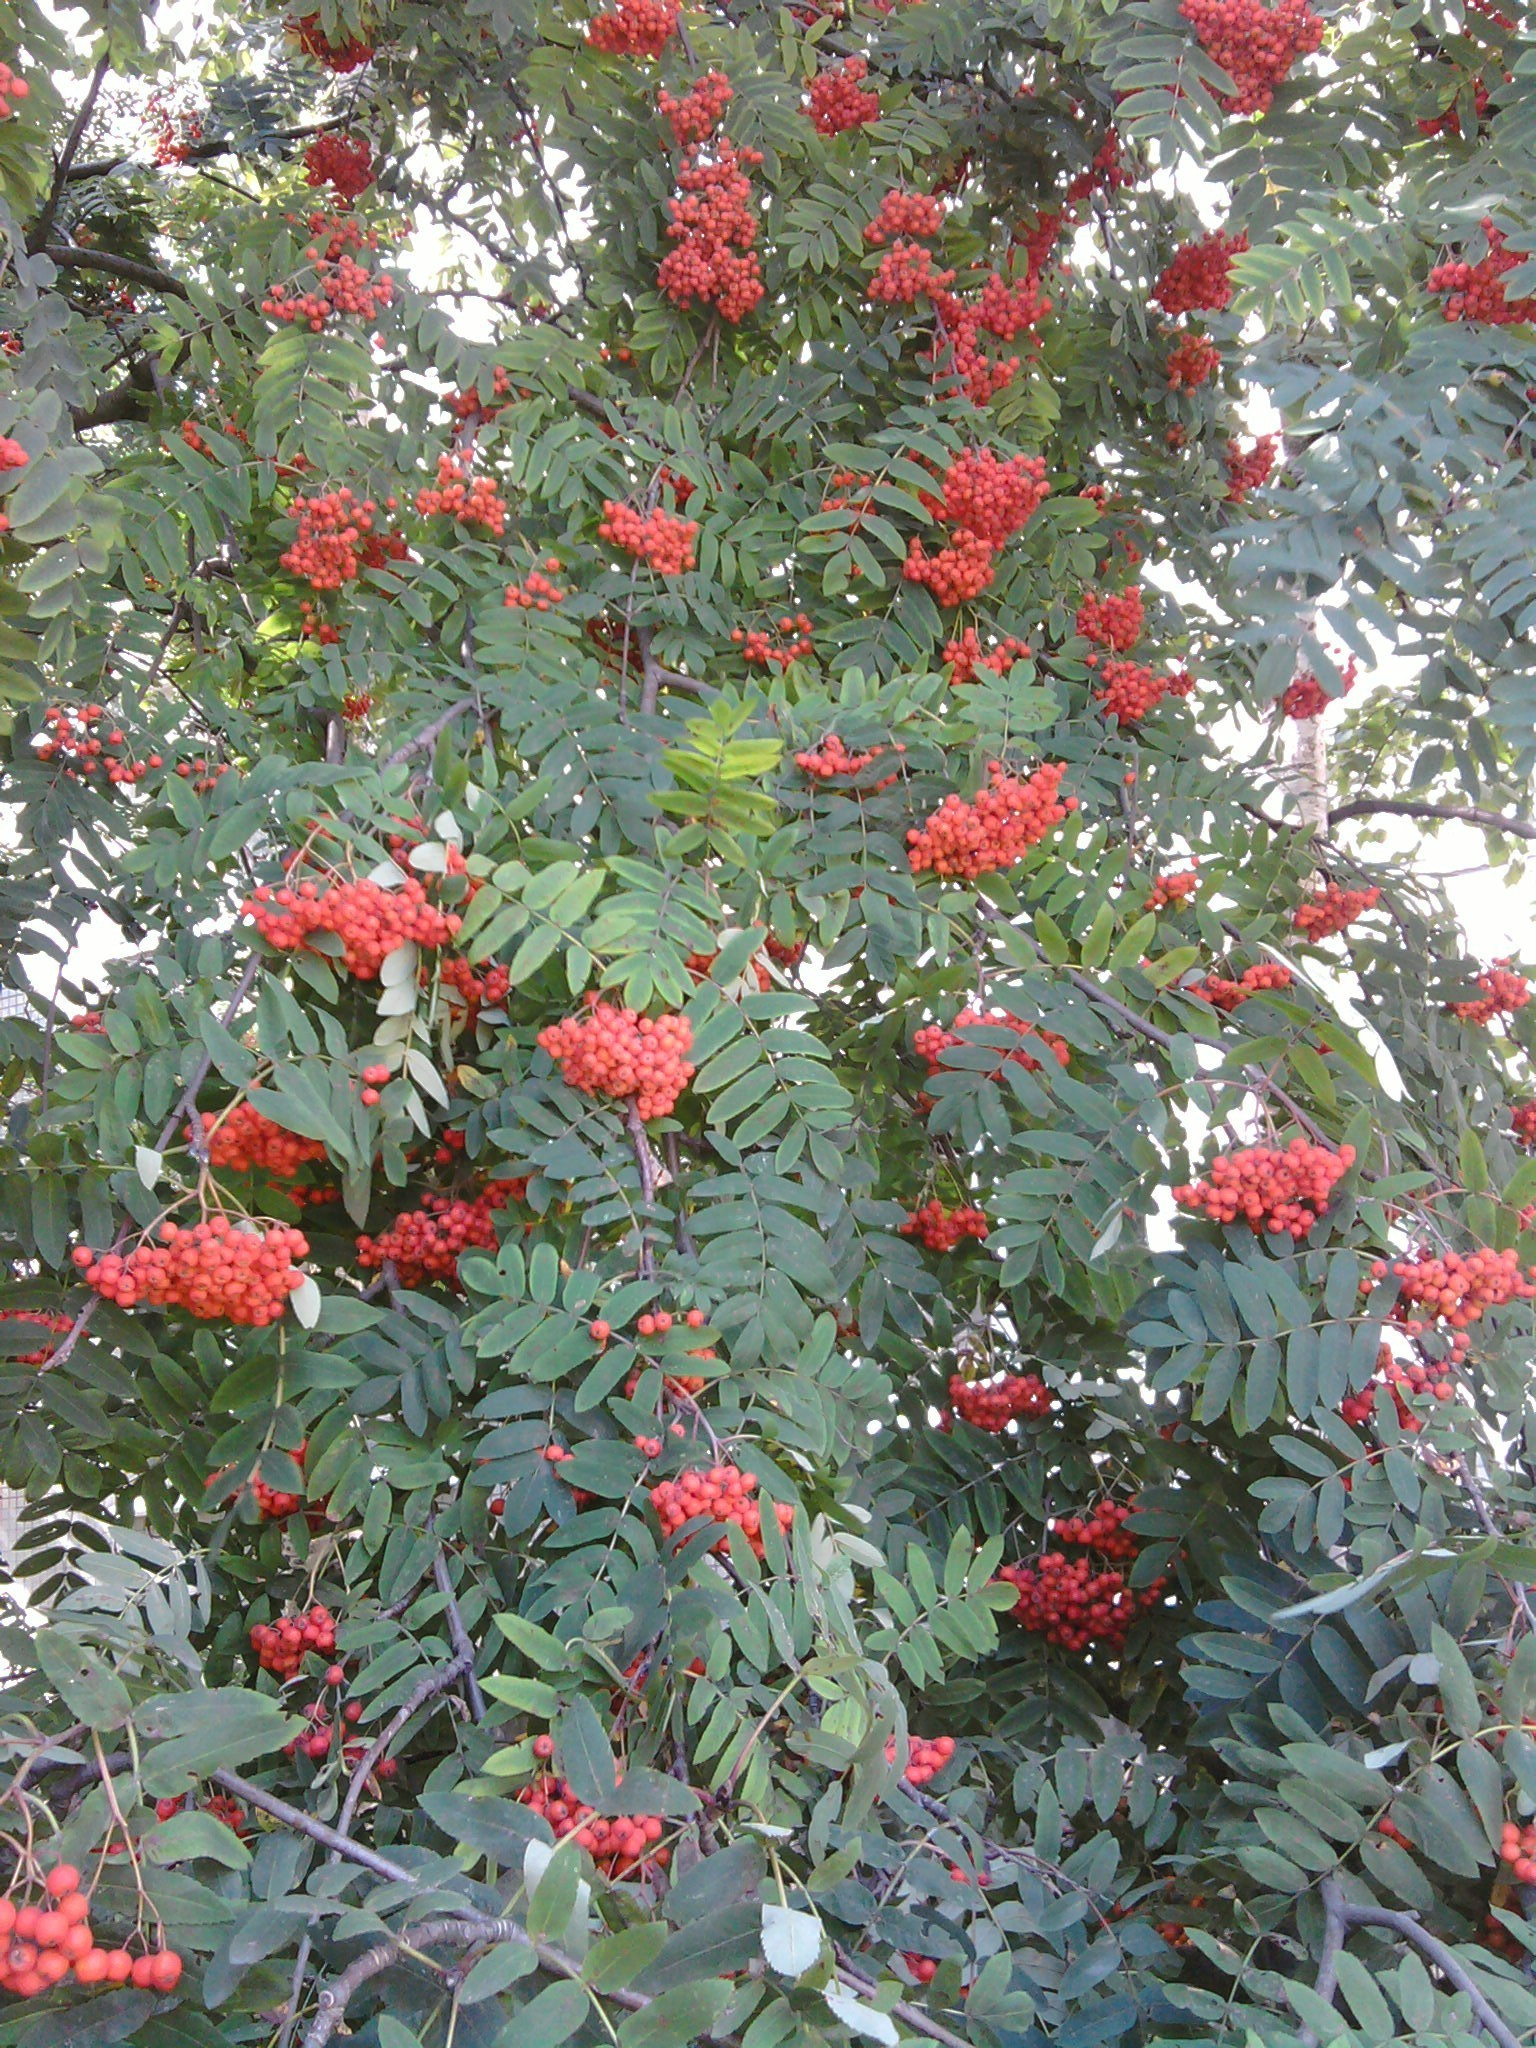 trees tree shrub branch leaf flower season berry flora nature rowan decoration garden rowanberry color evergreen fruit winter rose floral